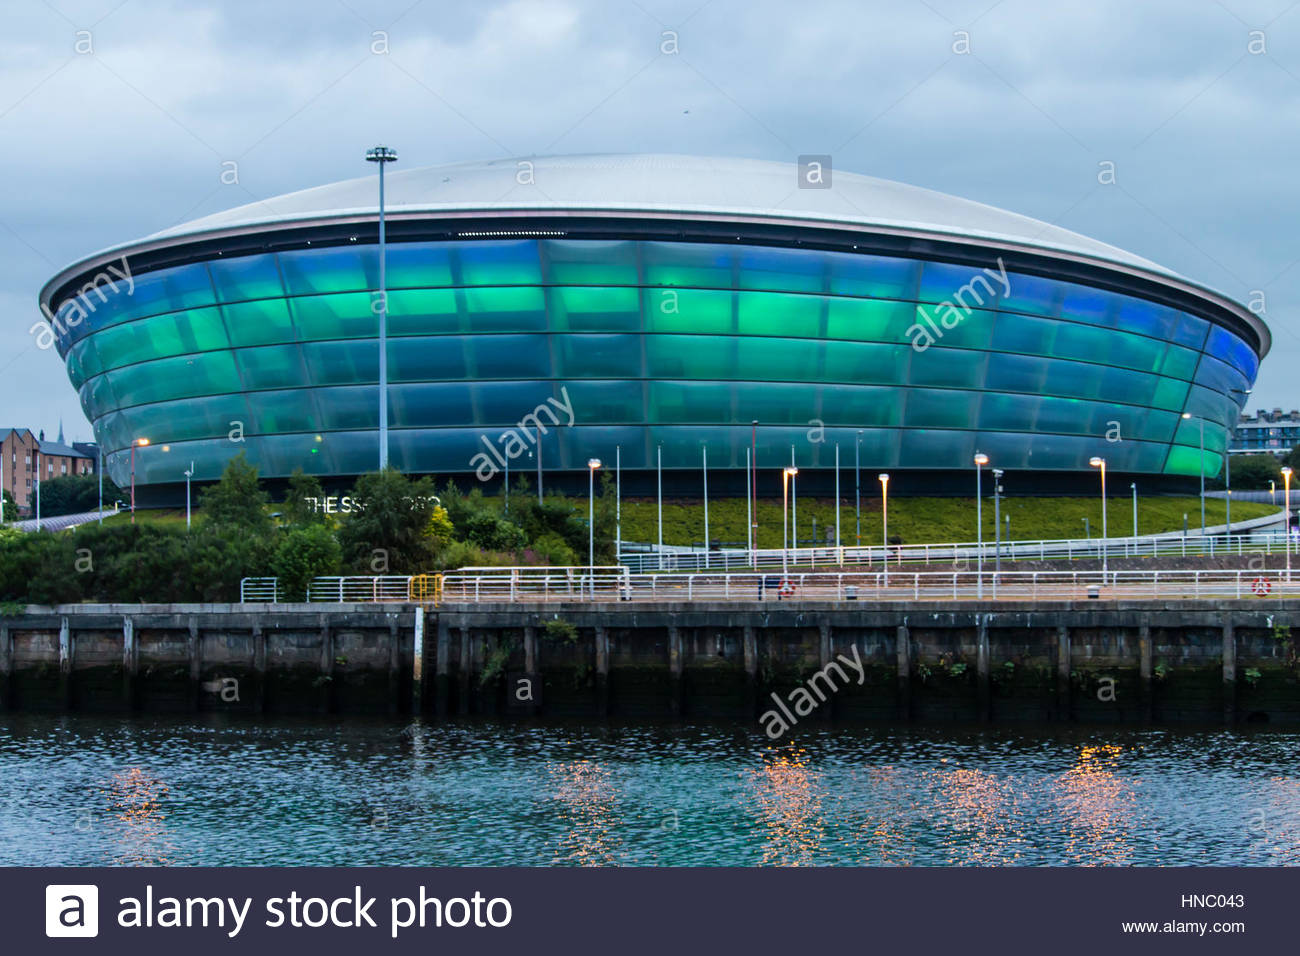 The SSE Hydro Center opened in 2013 in Glasgow and hosts music entertainment and sporting events. - Stock Image